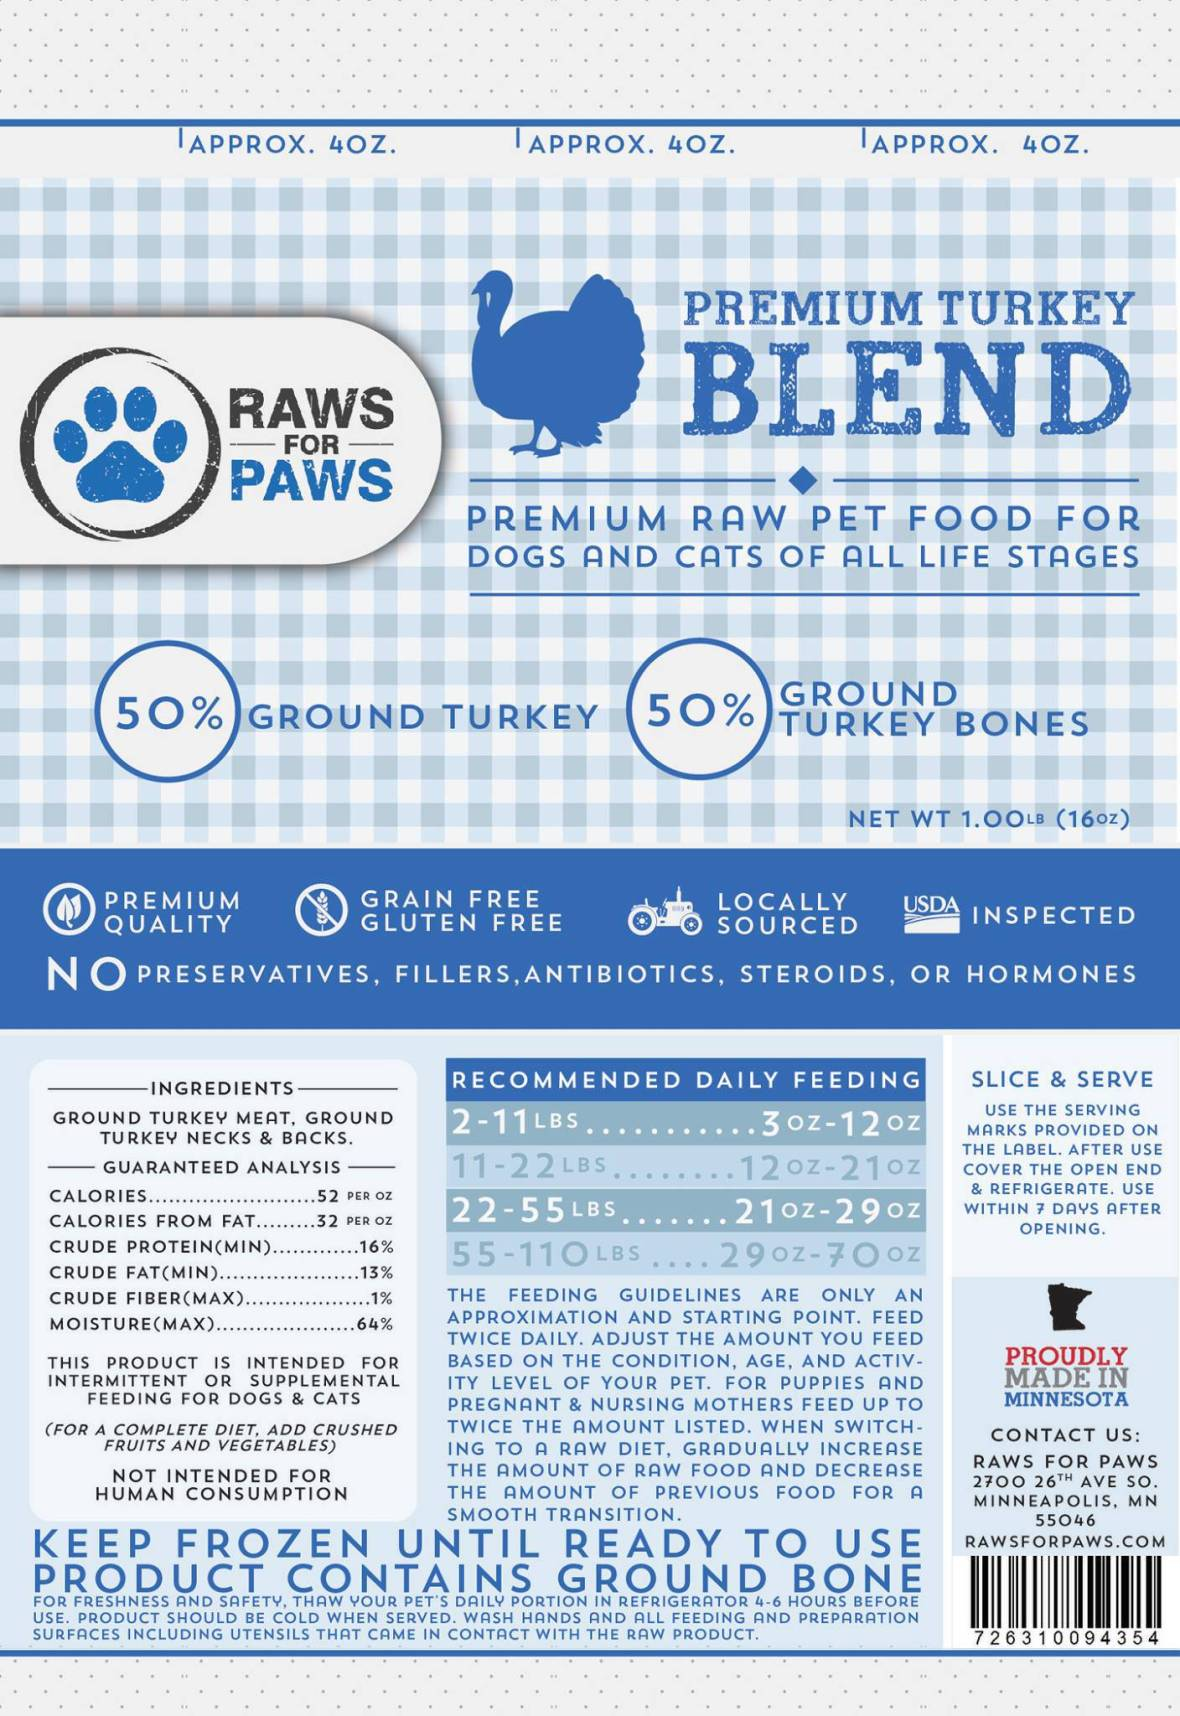 raw for paws